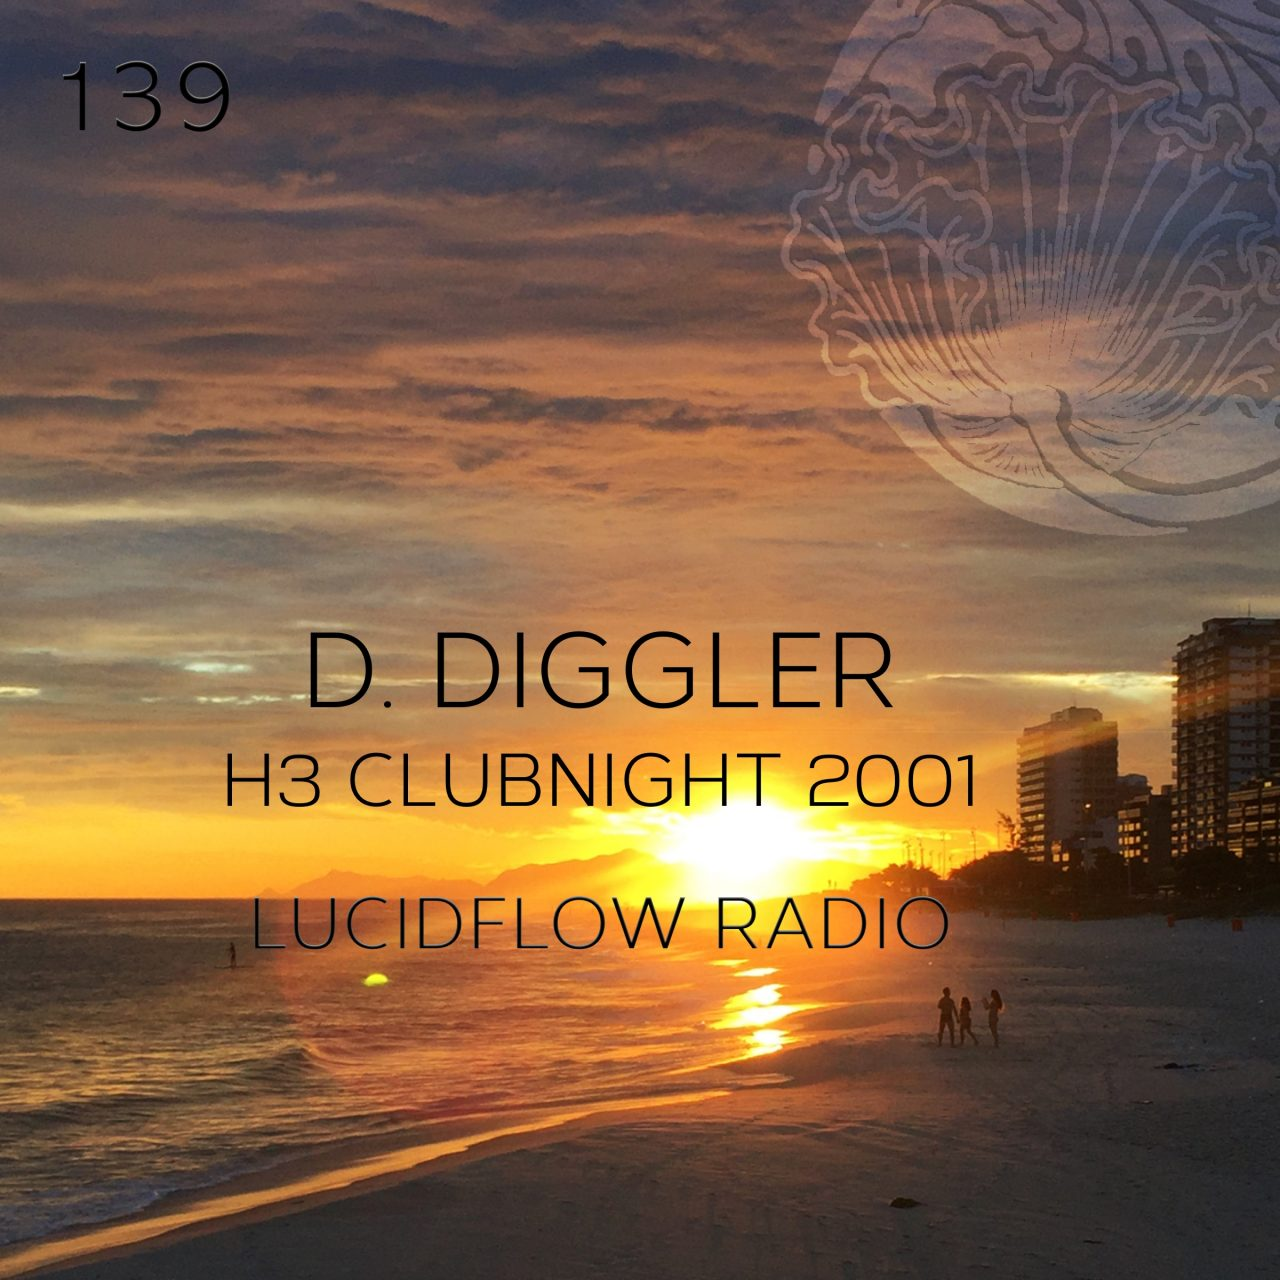 Lucidflow Radio 139: D. Diggler @ HR3 Club Night 2001